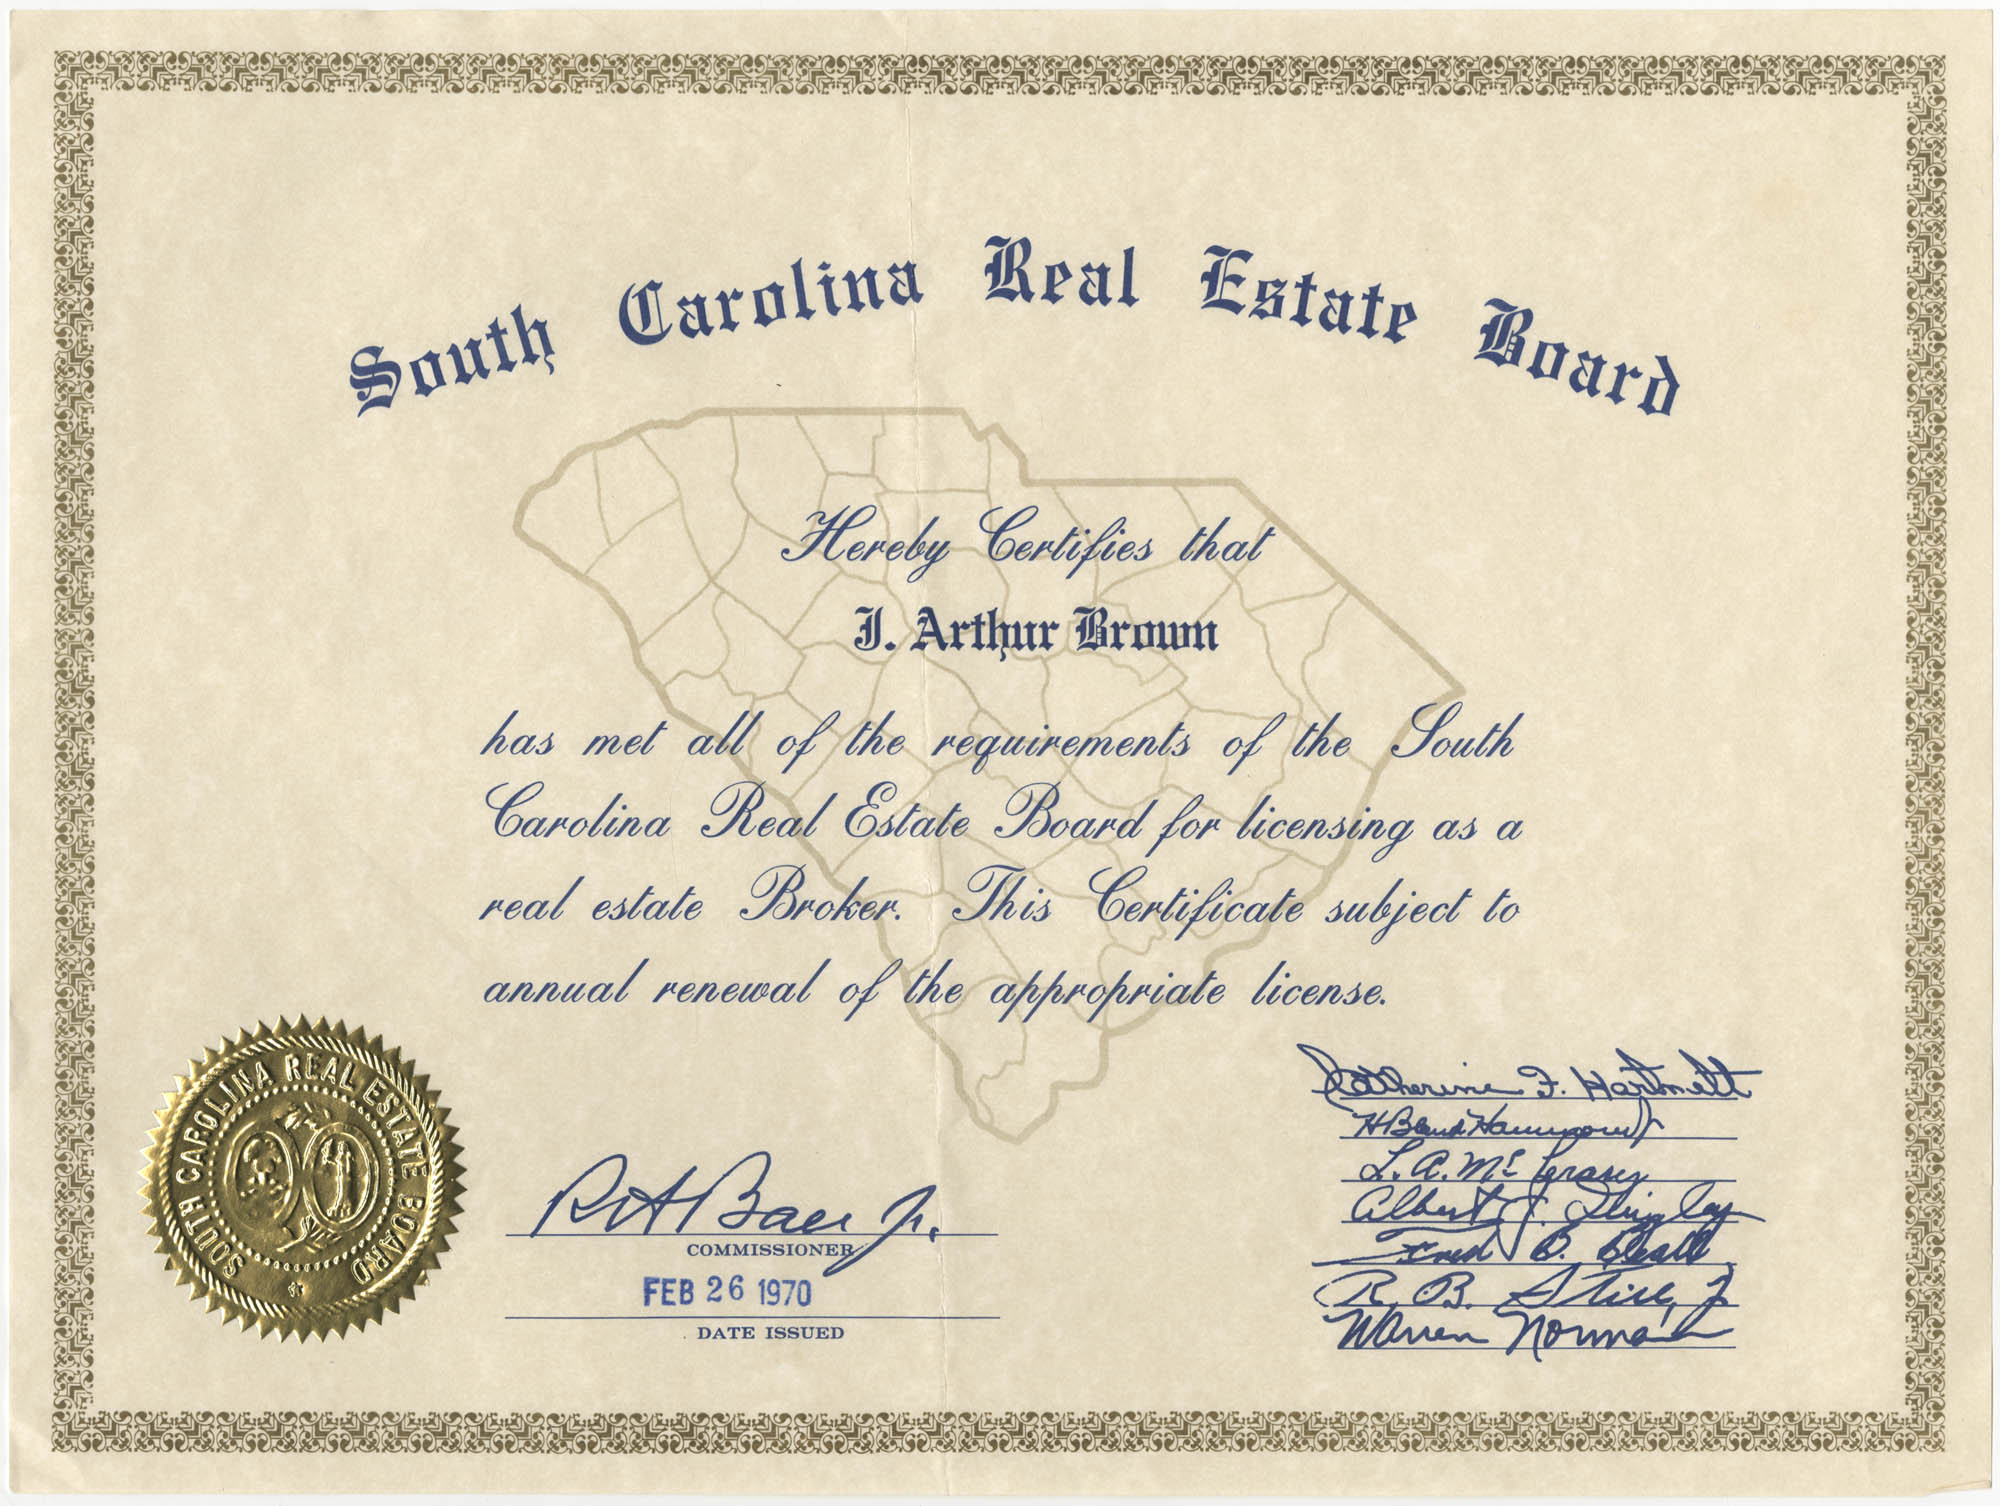 South Carolina Real Estate Board Certificate for J. Arthur Brown, February 26, 1970